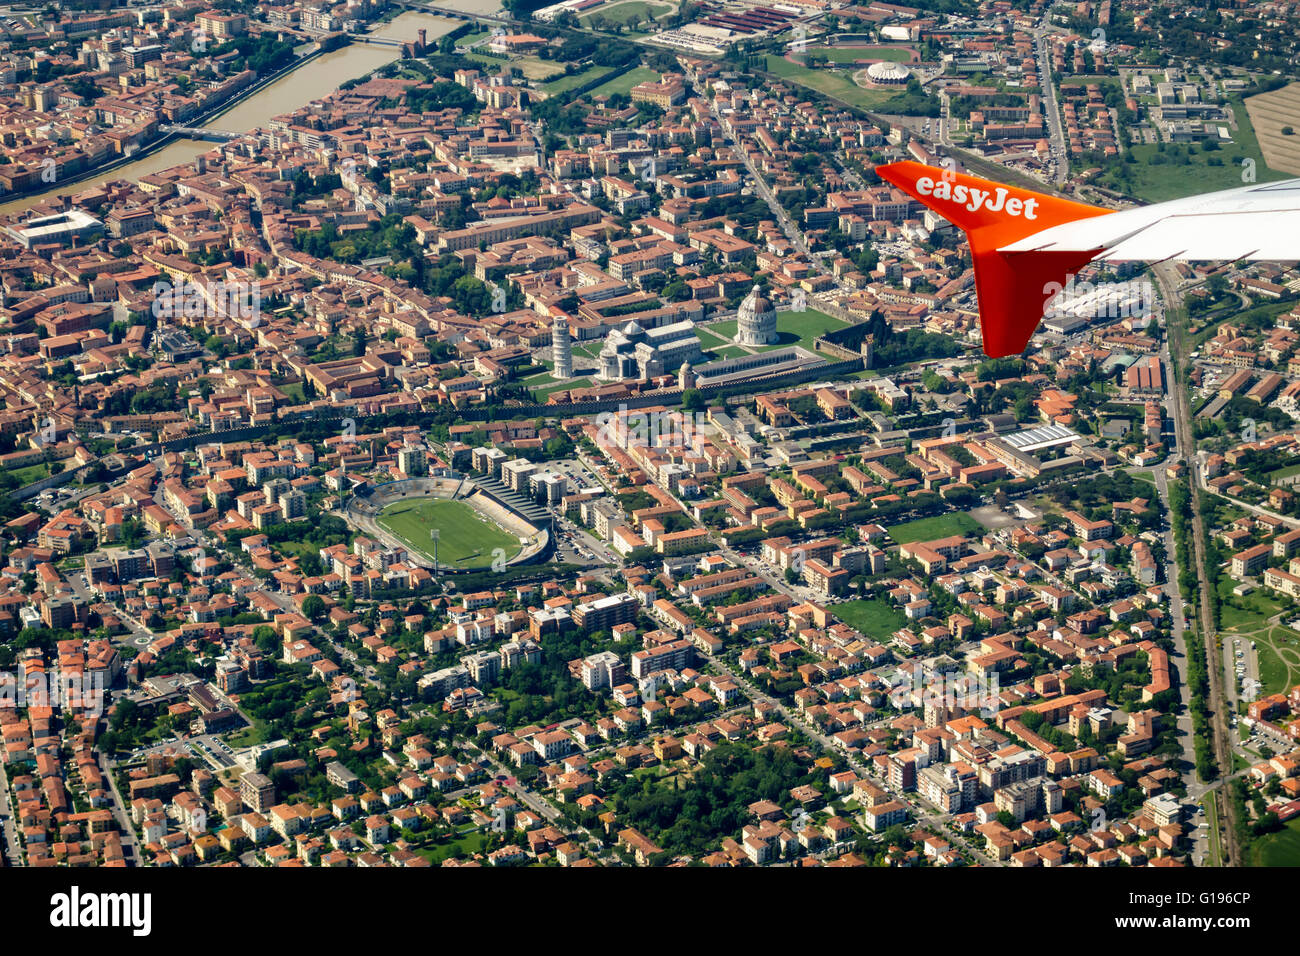 aerial-view-of-pisa-italy-from-an-easyjet-aircraft-after-leaving-the-G196CP.jpg